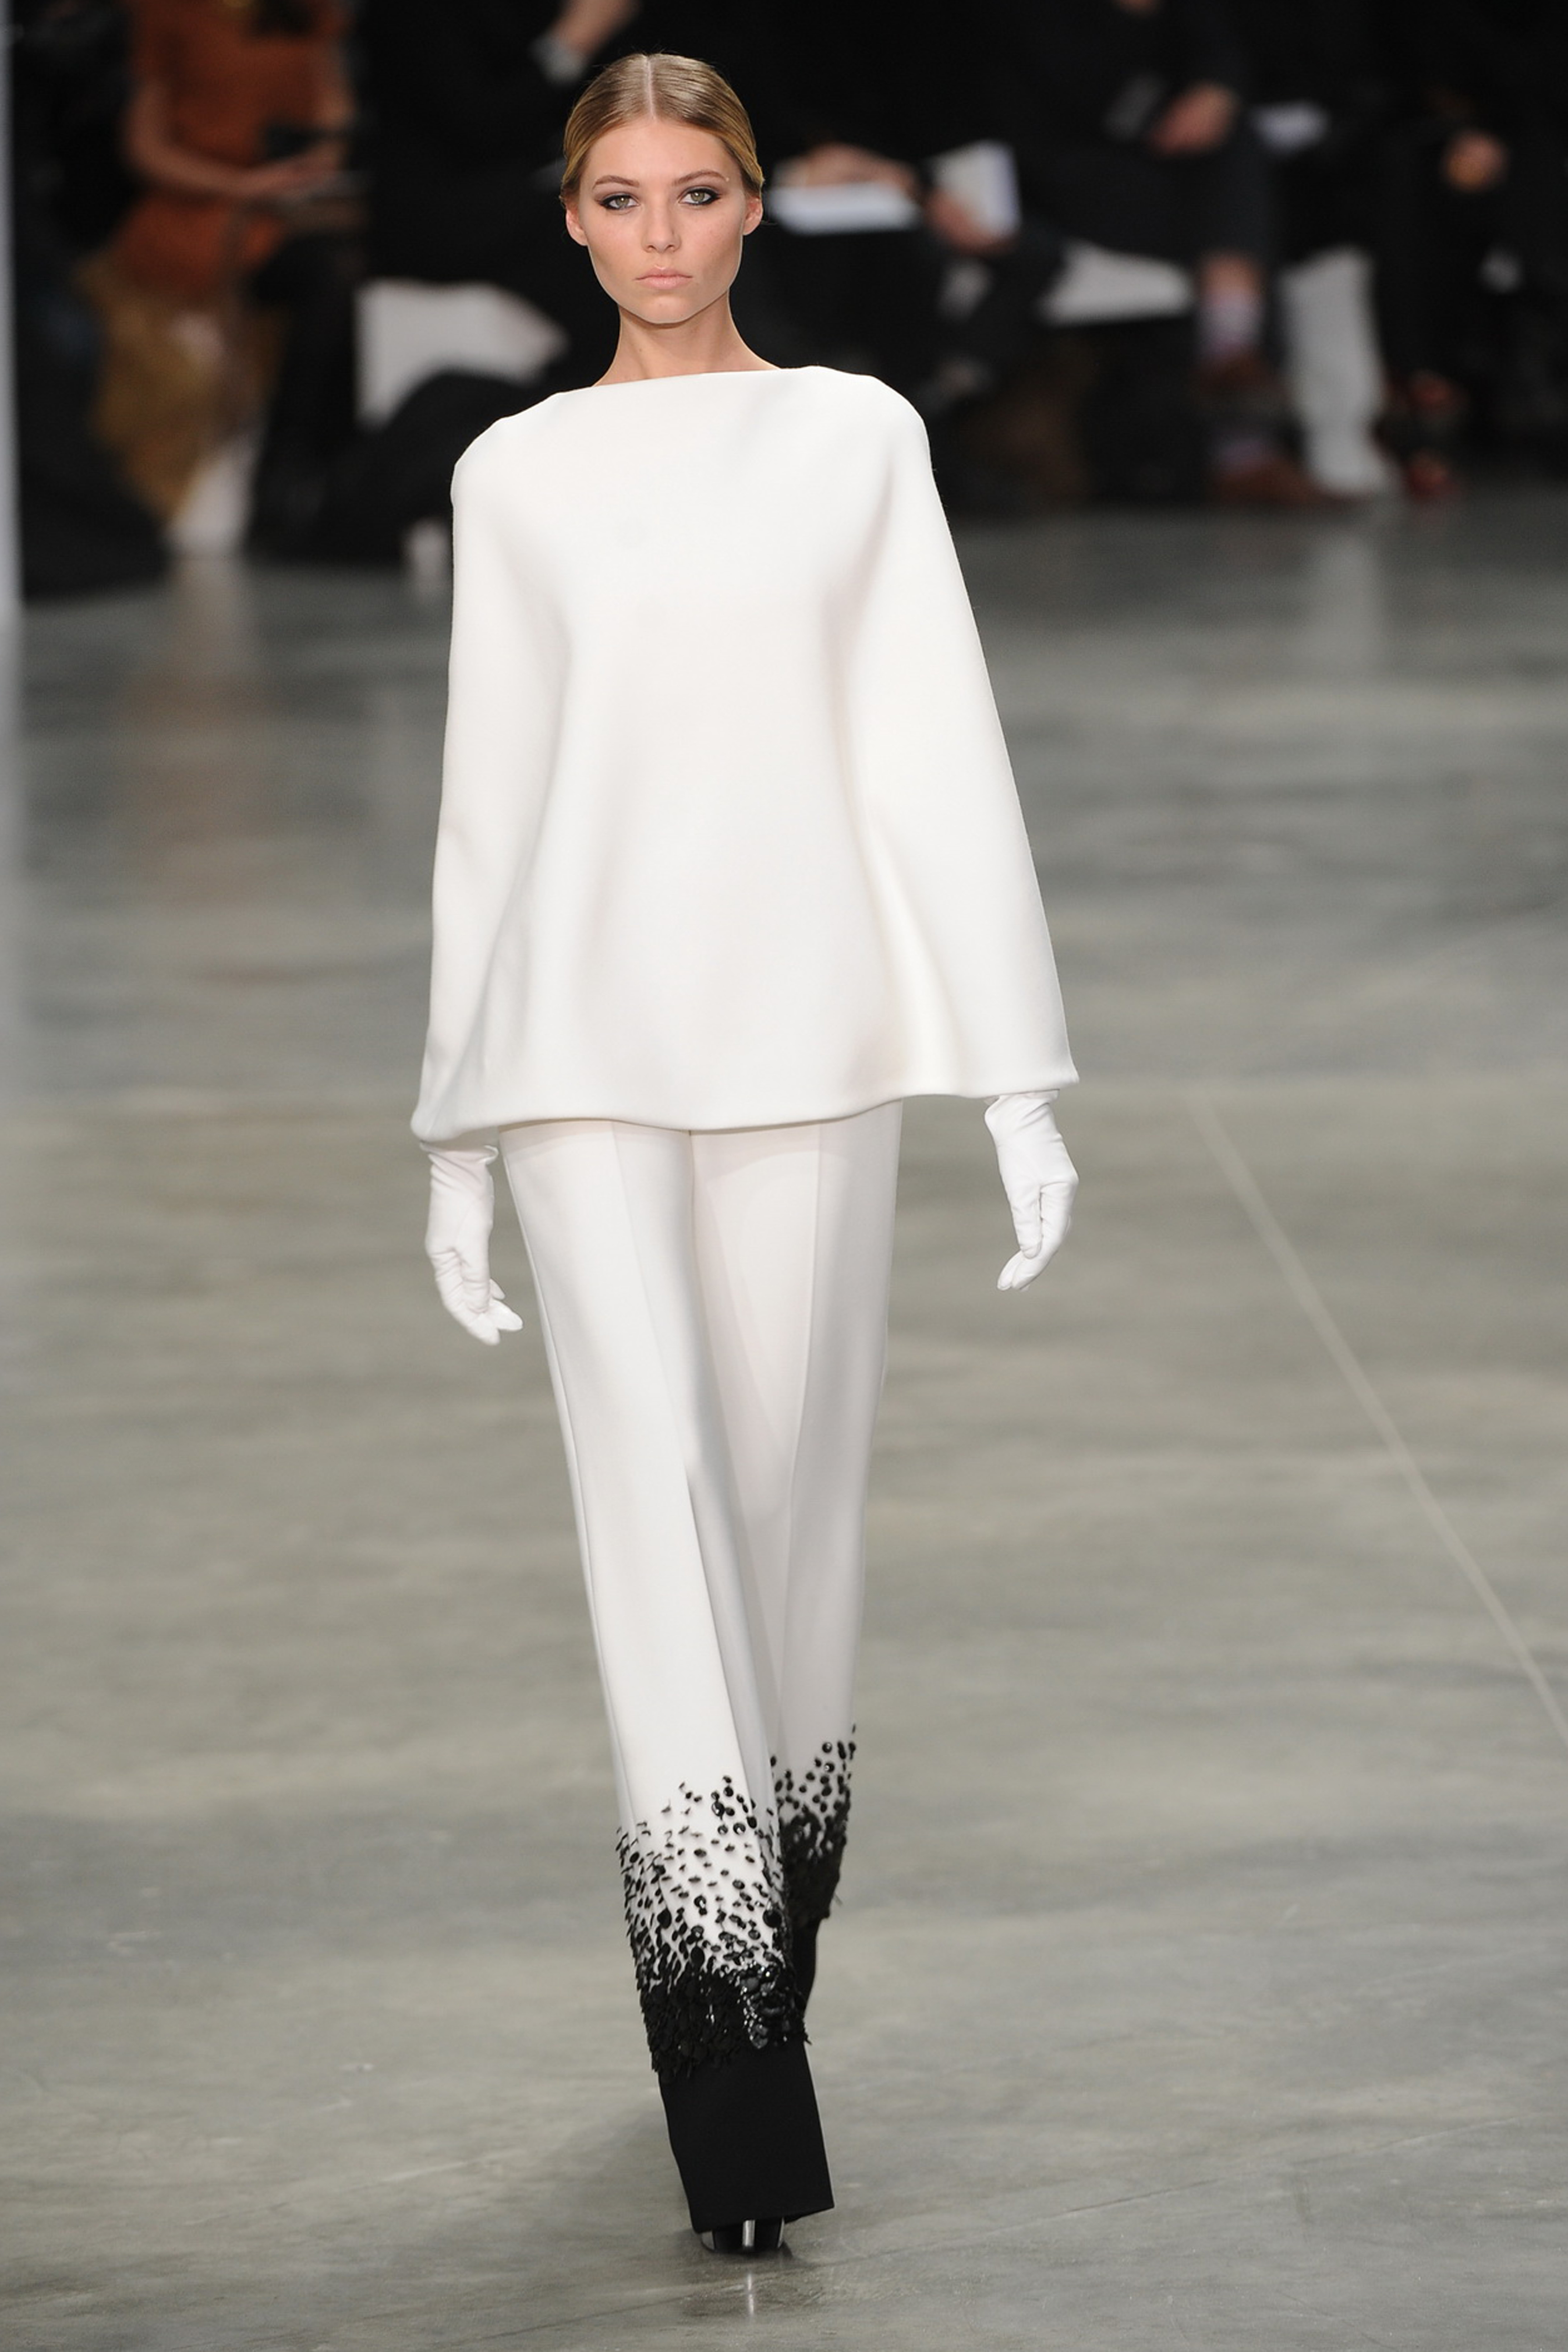 Haute Couture: Stéphane Rolland Spring 2013